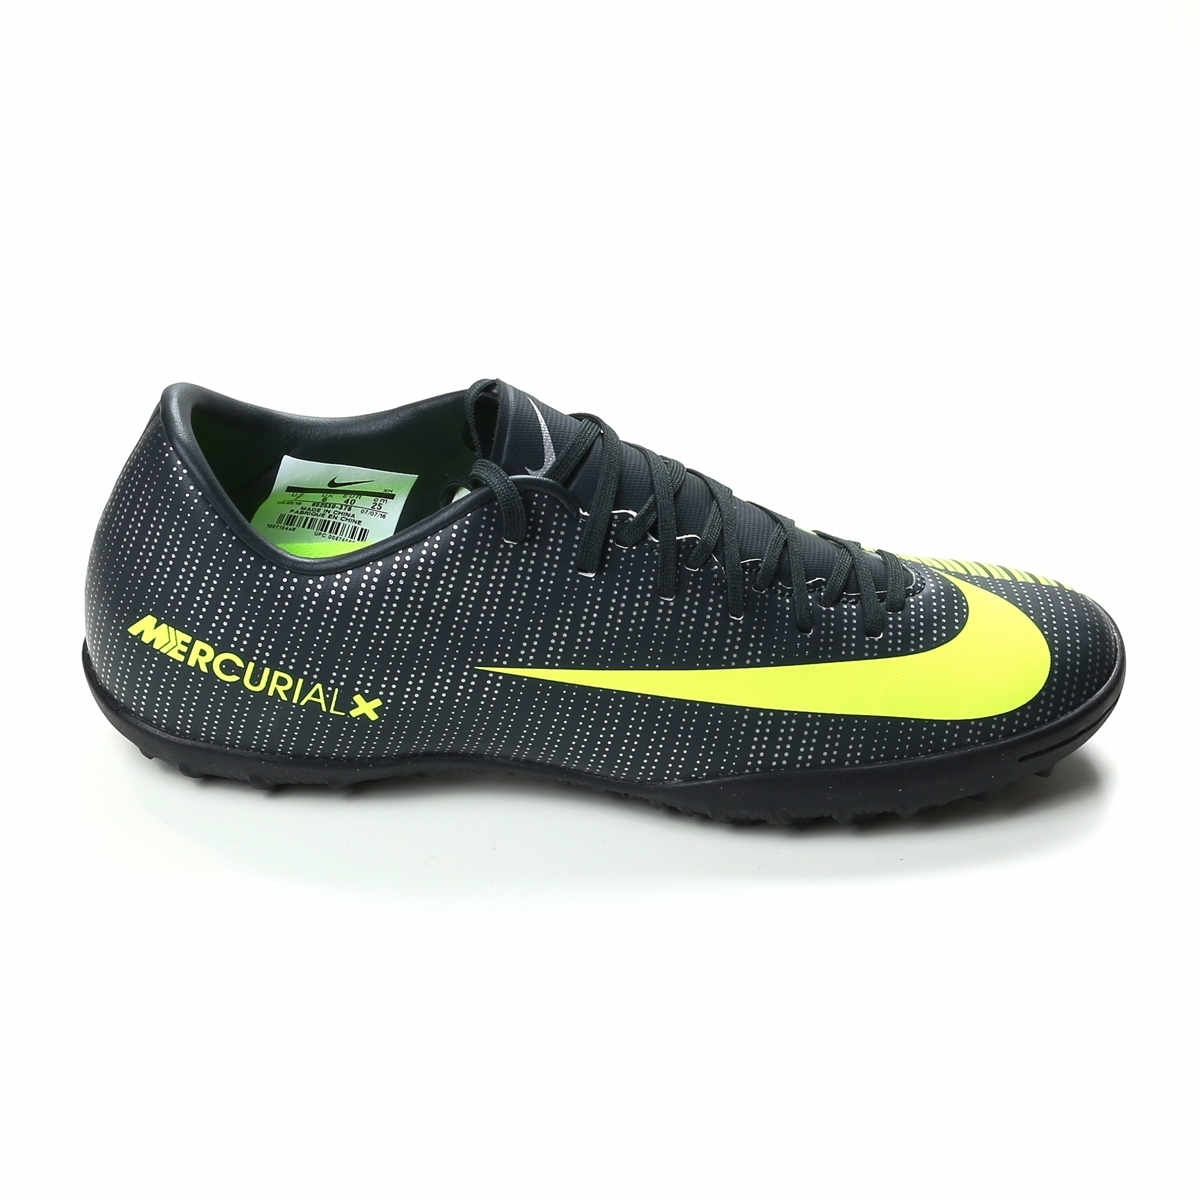 wholesale dealer c4bbf 51b39 Nike Mercurial Victory VI CR7 Turf Soccer Shoes (Seaweed/Volt/Hasta/White)